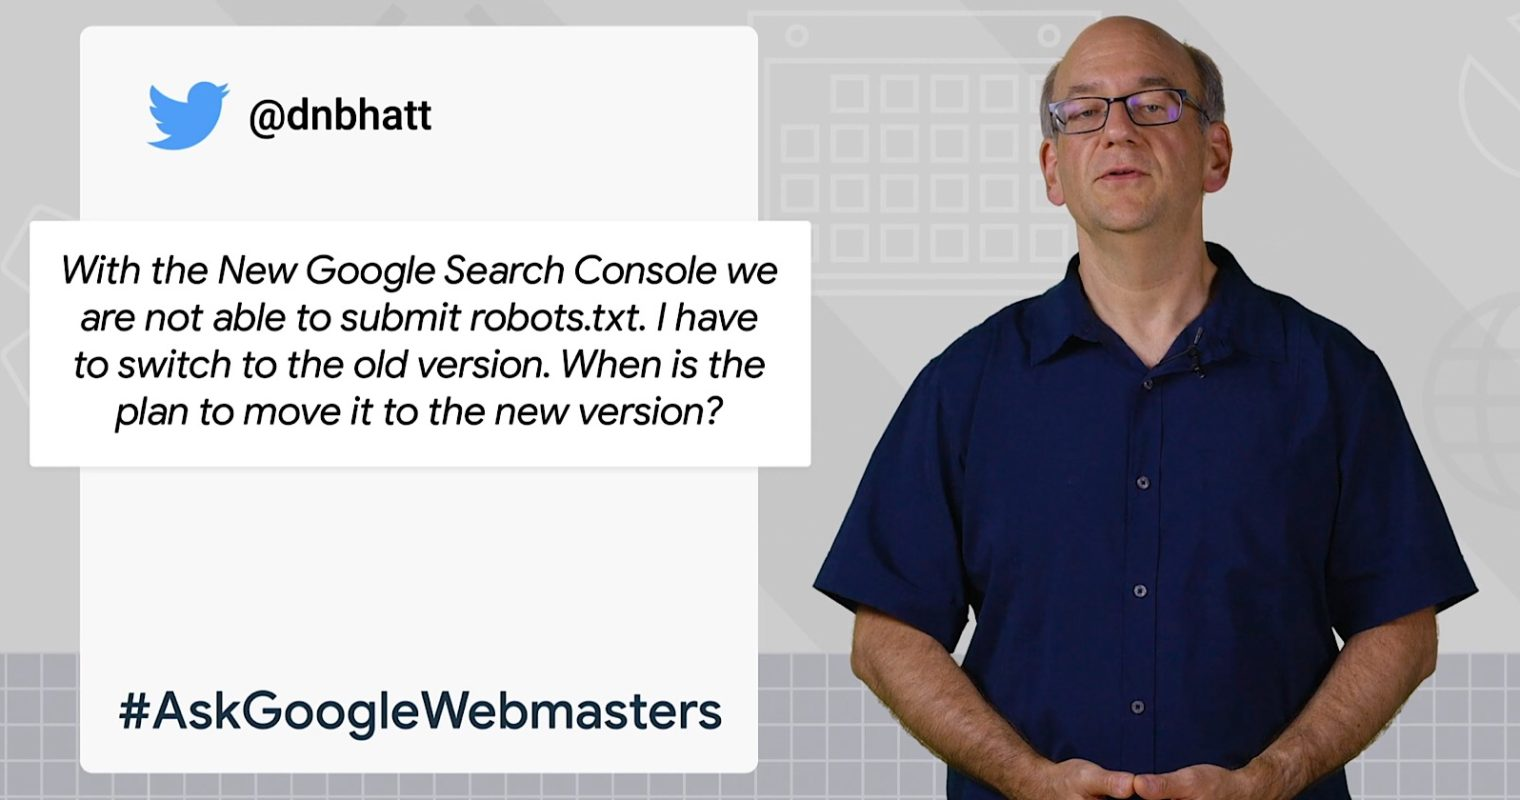 Google Doesn't Intend to Bring All Old Features to the New Search Console